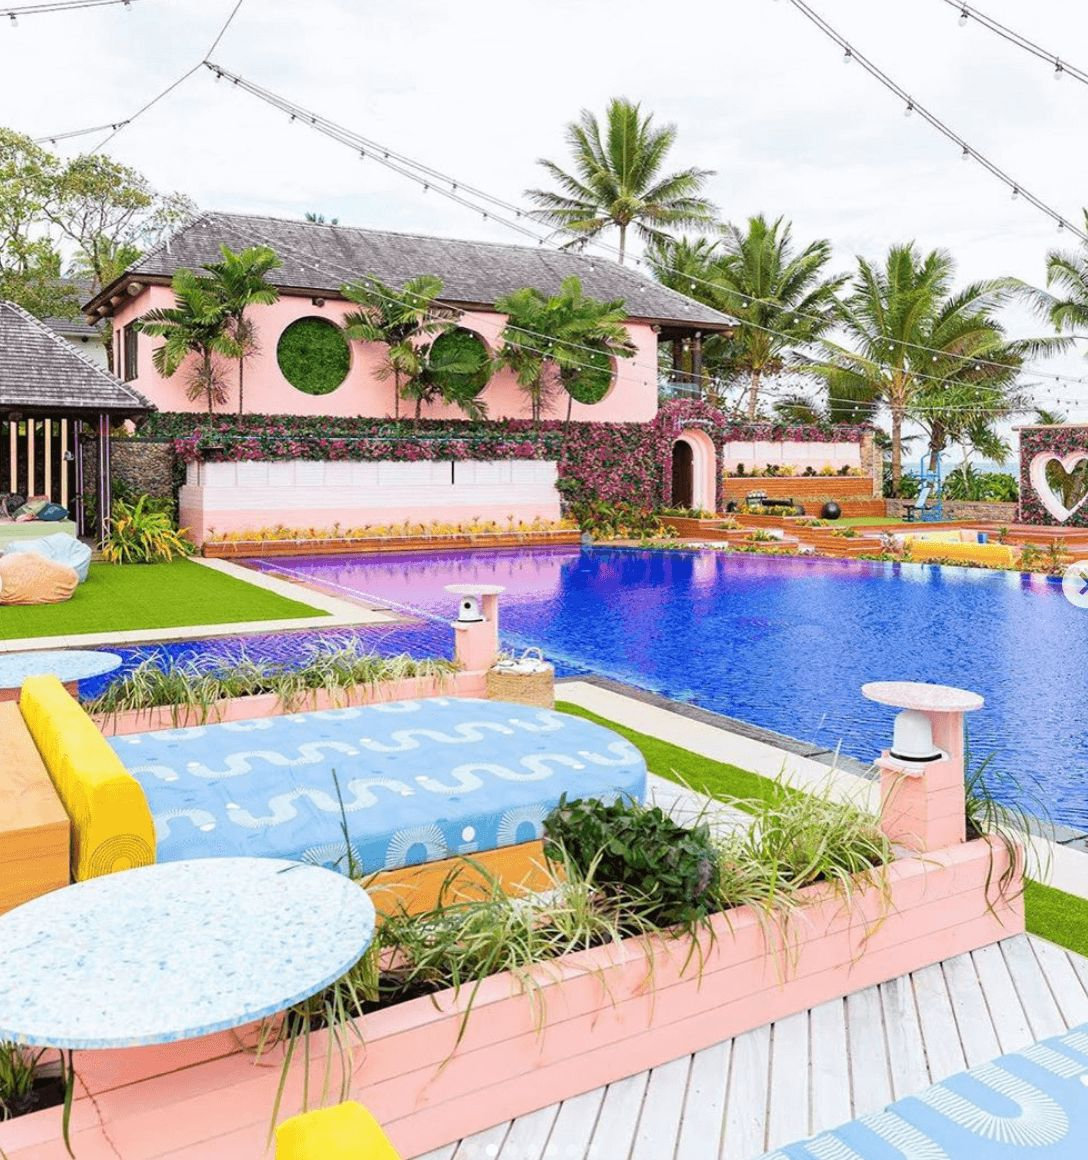 Image may contain: Love Island USA villa, Love Island USA, villa, Love Island, CBS, Fiji, pool, House, Villa, Housing, Jacuzzi, Tub, Hot Tub, Water, Building, Hotel, Resort